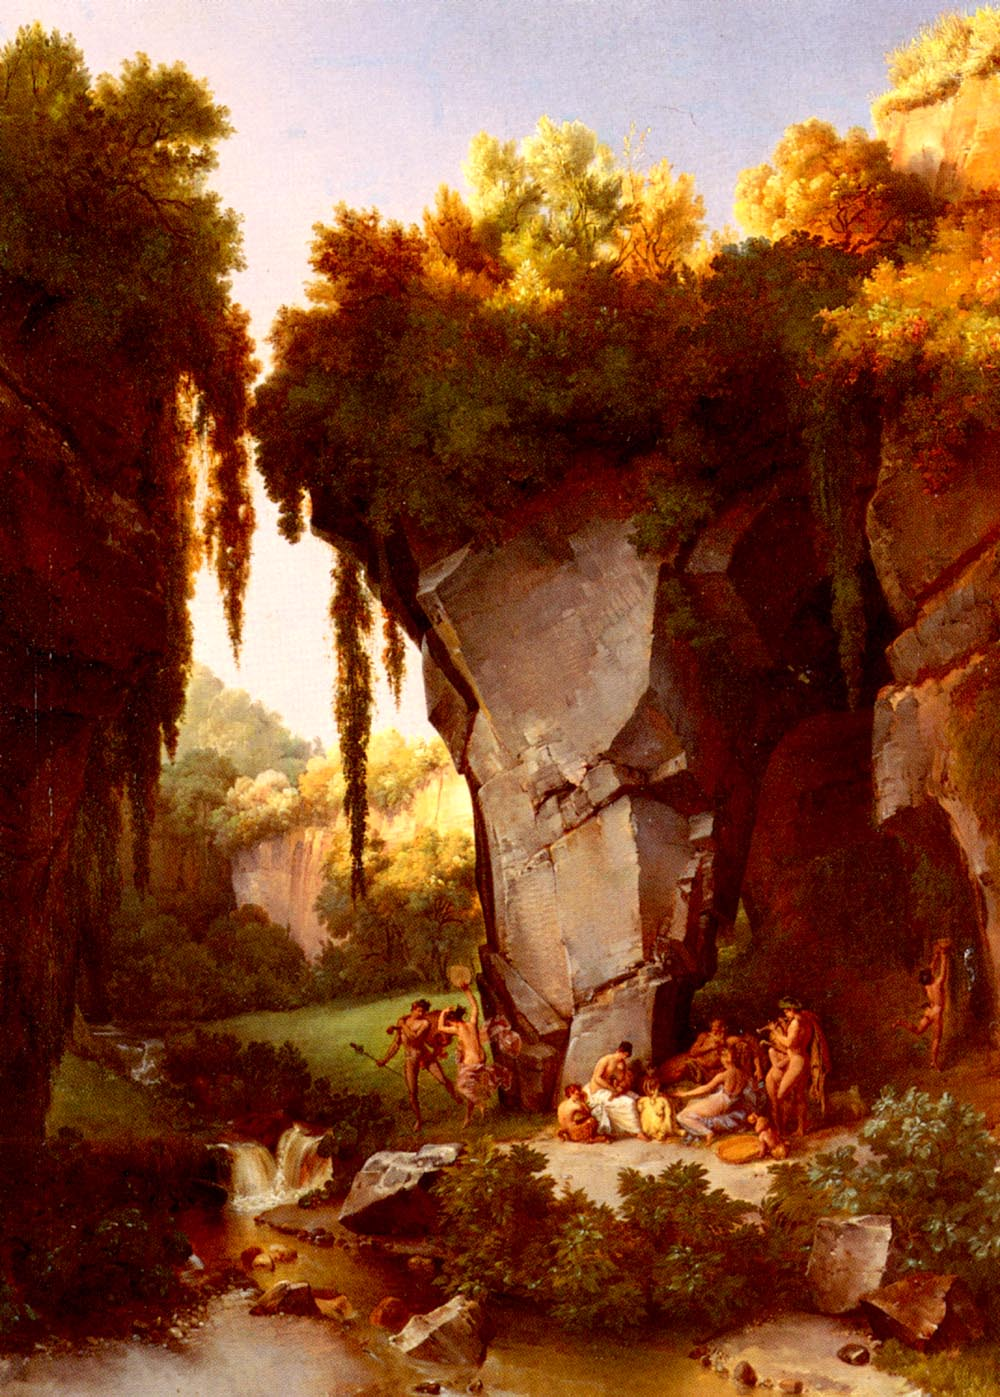 Craggy Landscape With Bacchanal | Lancelot Theodore Turpin | Oil Painting